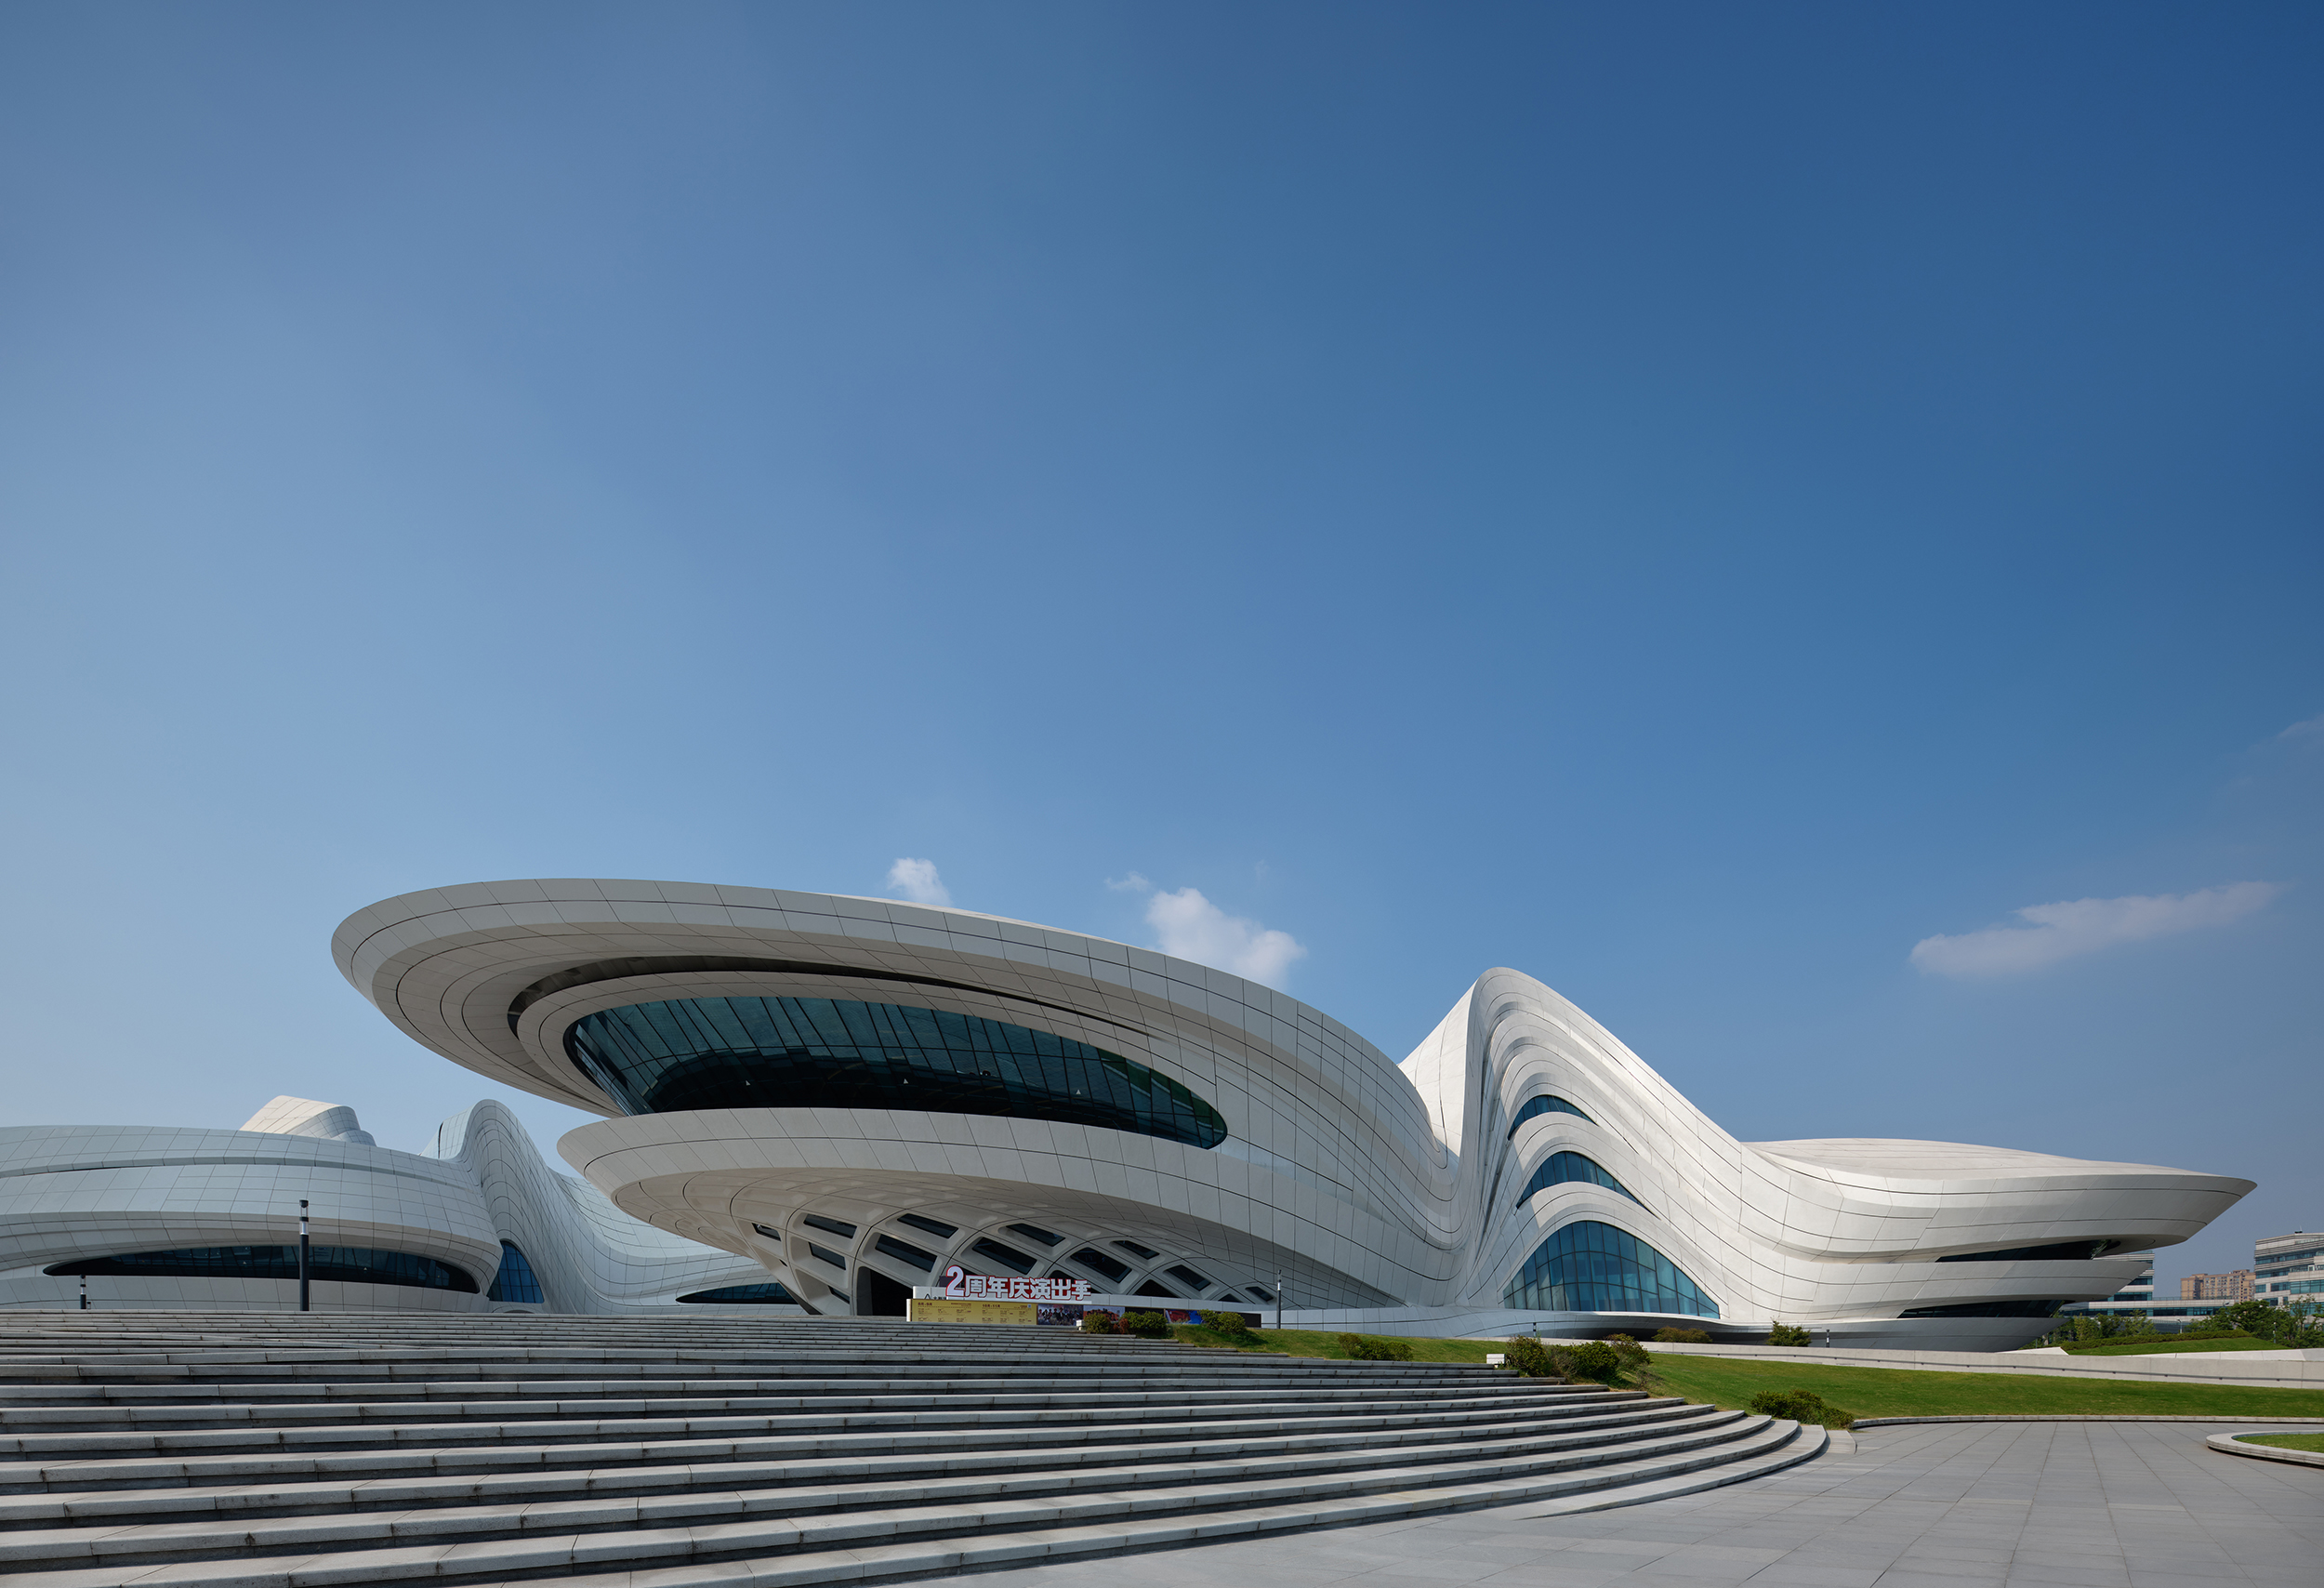 New China culture Center by Zaha Hadid Architects